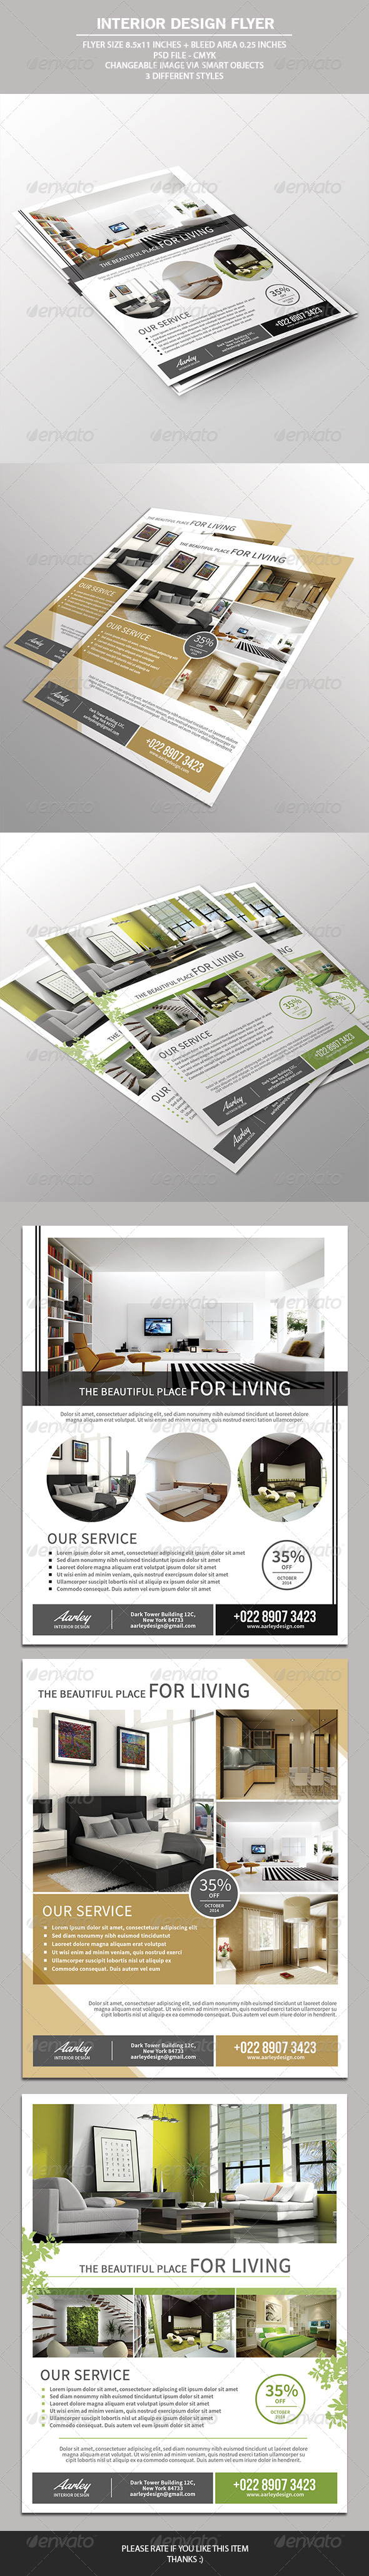 GraphicRiver Interior Design Flyer 7520574